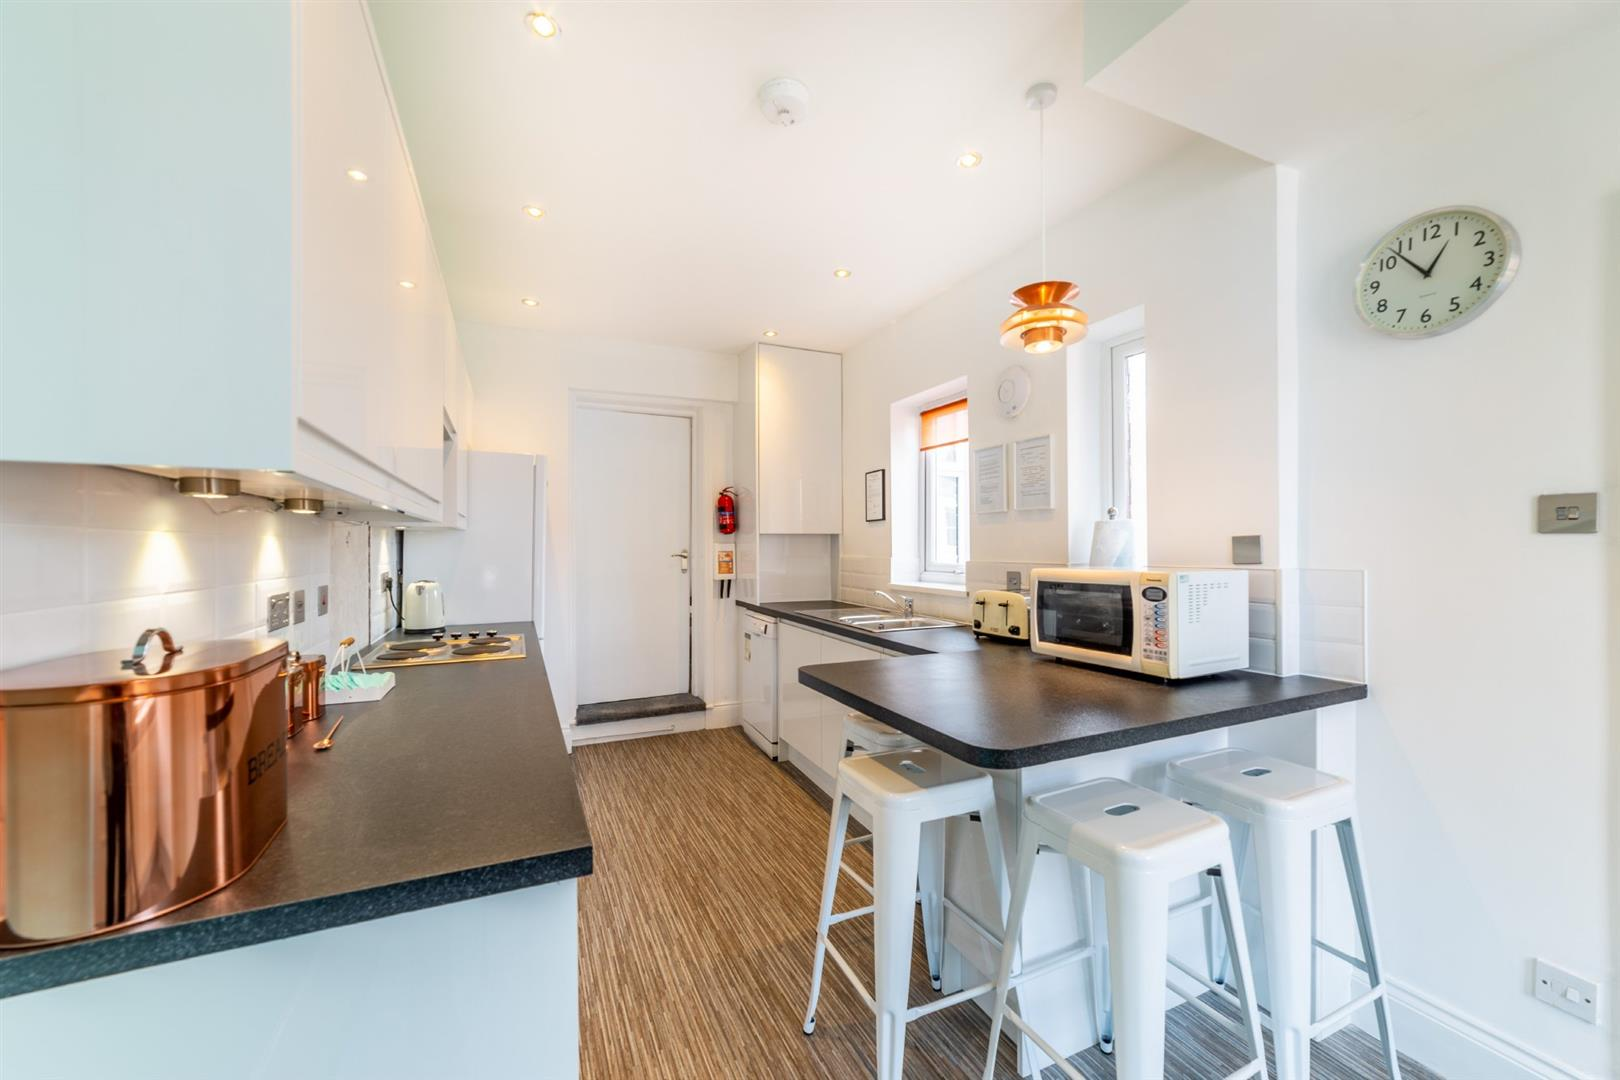 6 bed maisonette to rent in Newcastle Upon Tyne, NE2 3HS  - Property Image 2